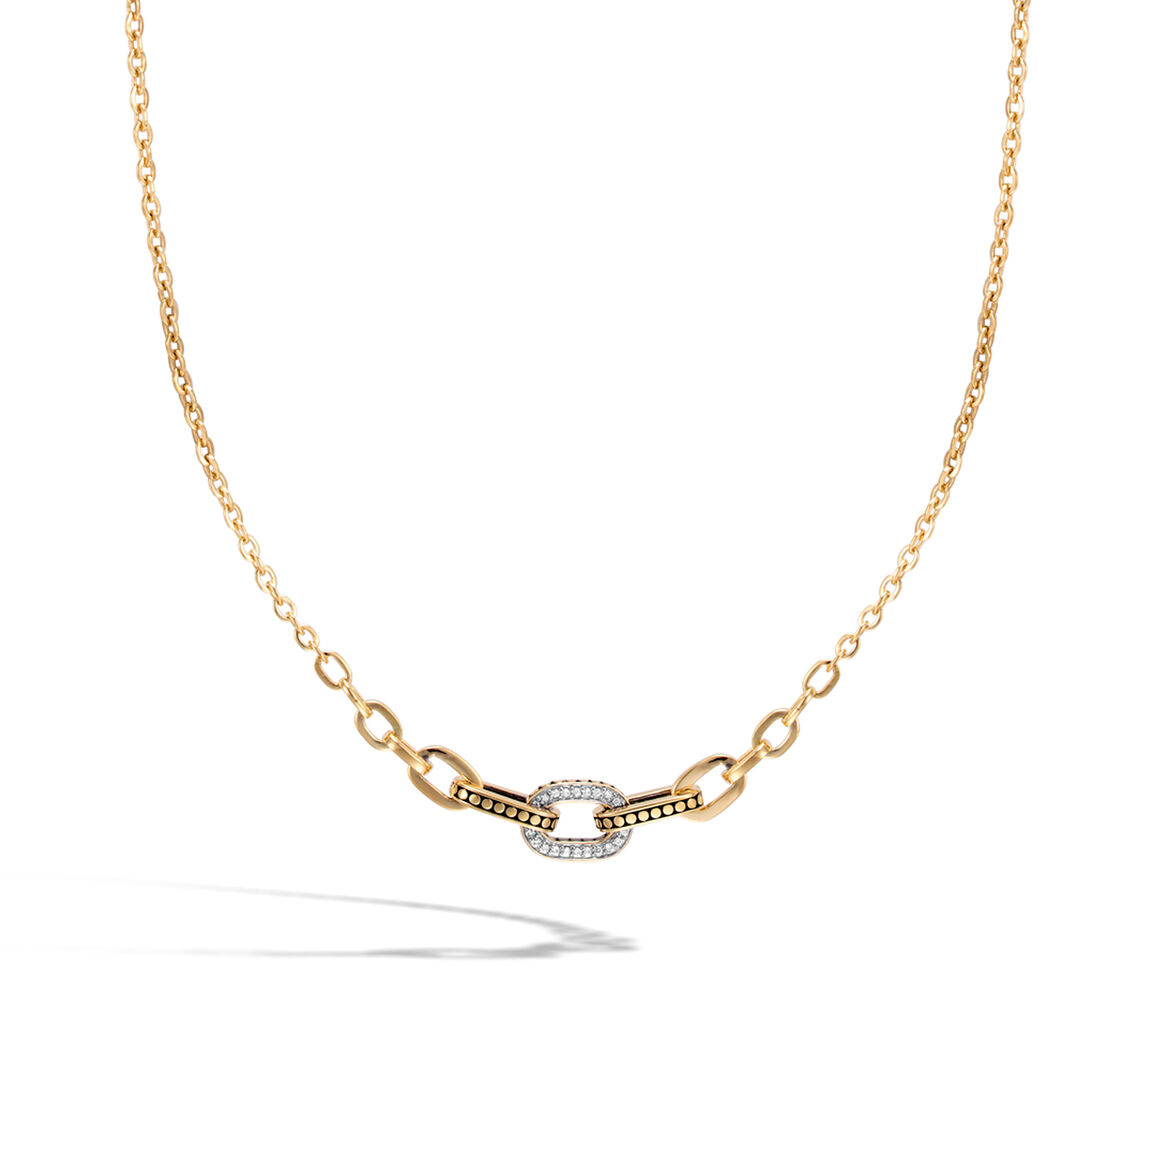 Dot Graduated Link Necklace in 18K Gold with Diamonds